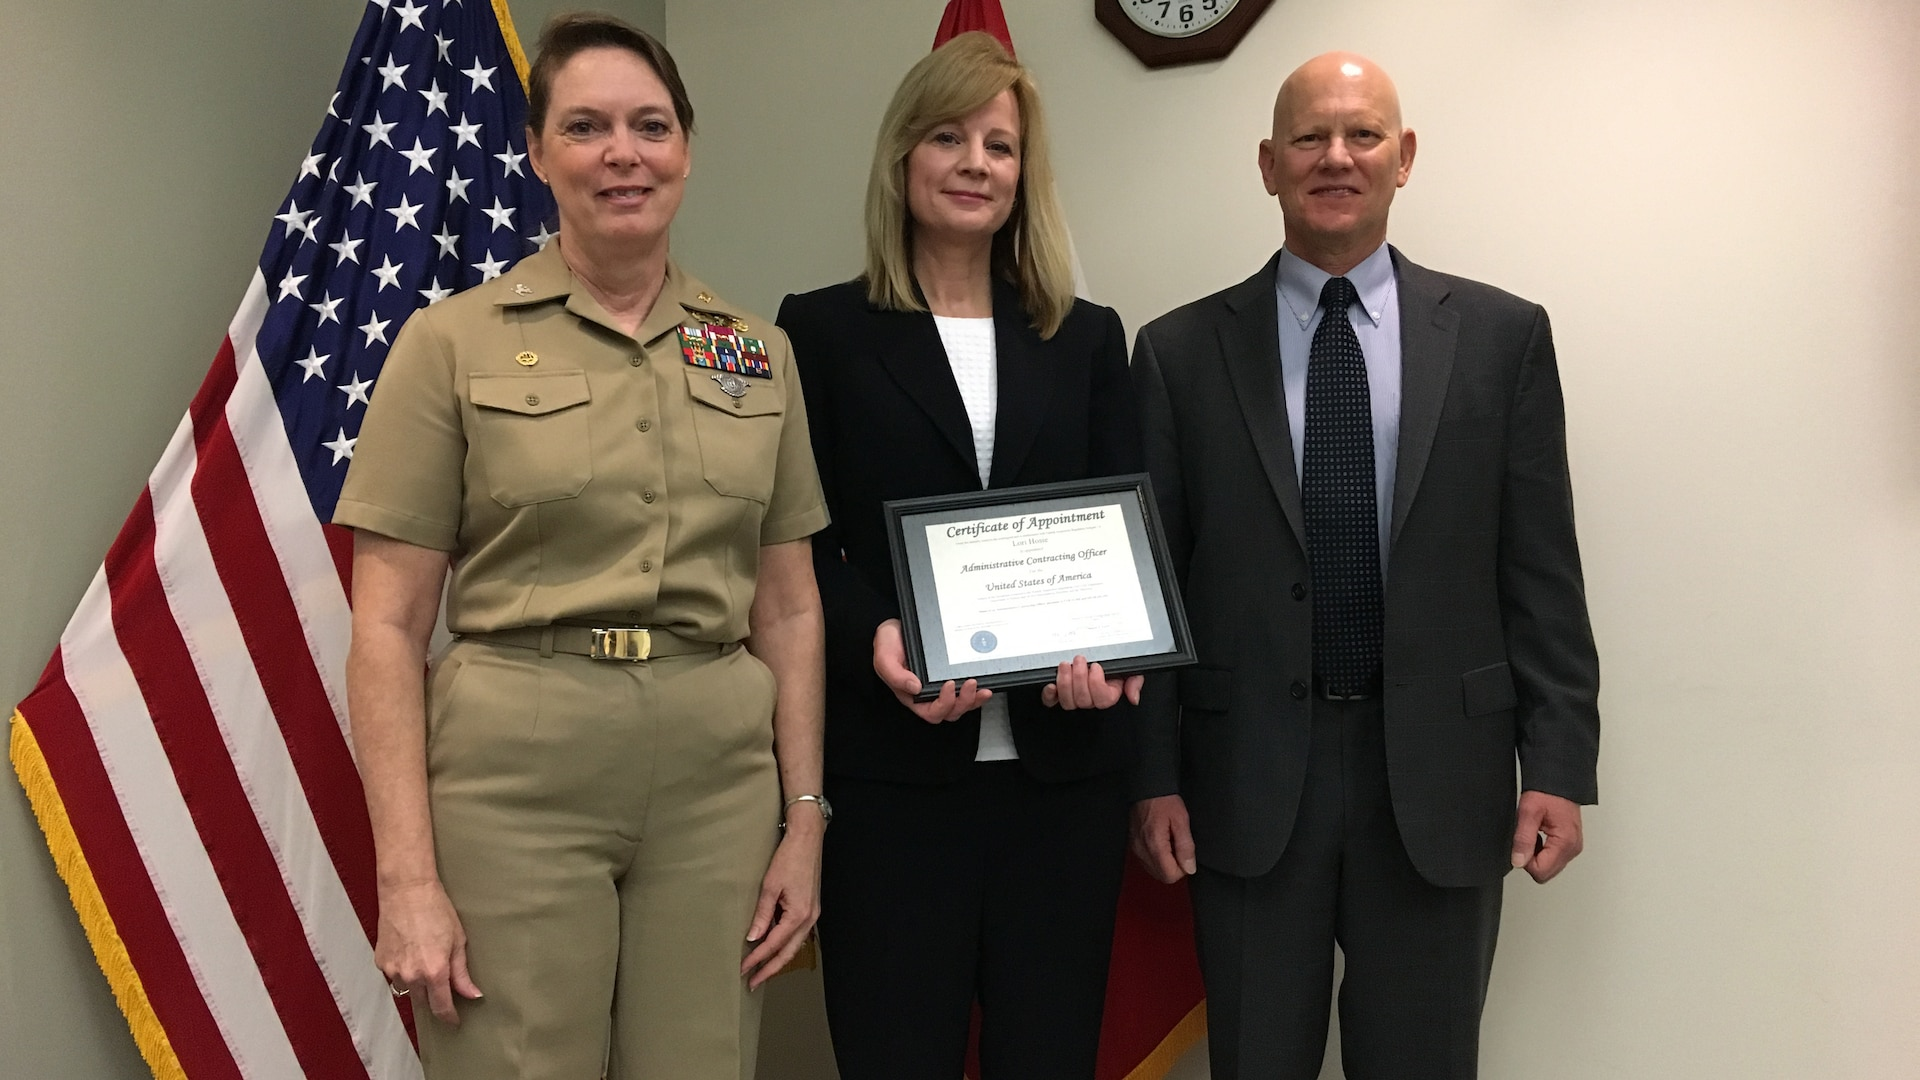 Commander of Defense Contract Management Agency International, Navy Capt. Sonya Ebright (left) and Robert Billington (right), DCMA Americas Director present Lori Hosie with her administrative contracting officer's warrant in Ottawa, Ontario, Canada March 20. Hosie is currently the only DCMA local national employee who holds an active warrant. (DCMA photo by Kelli Zagata)